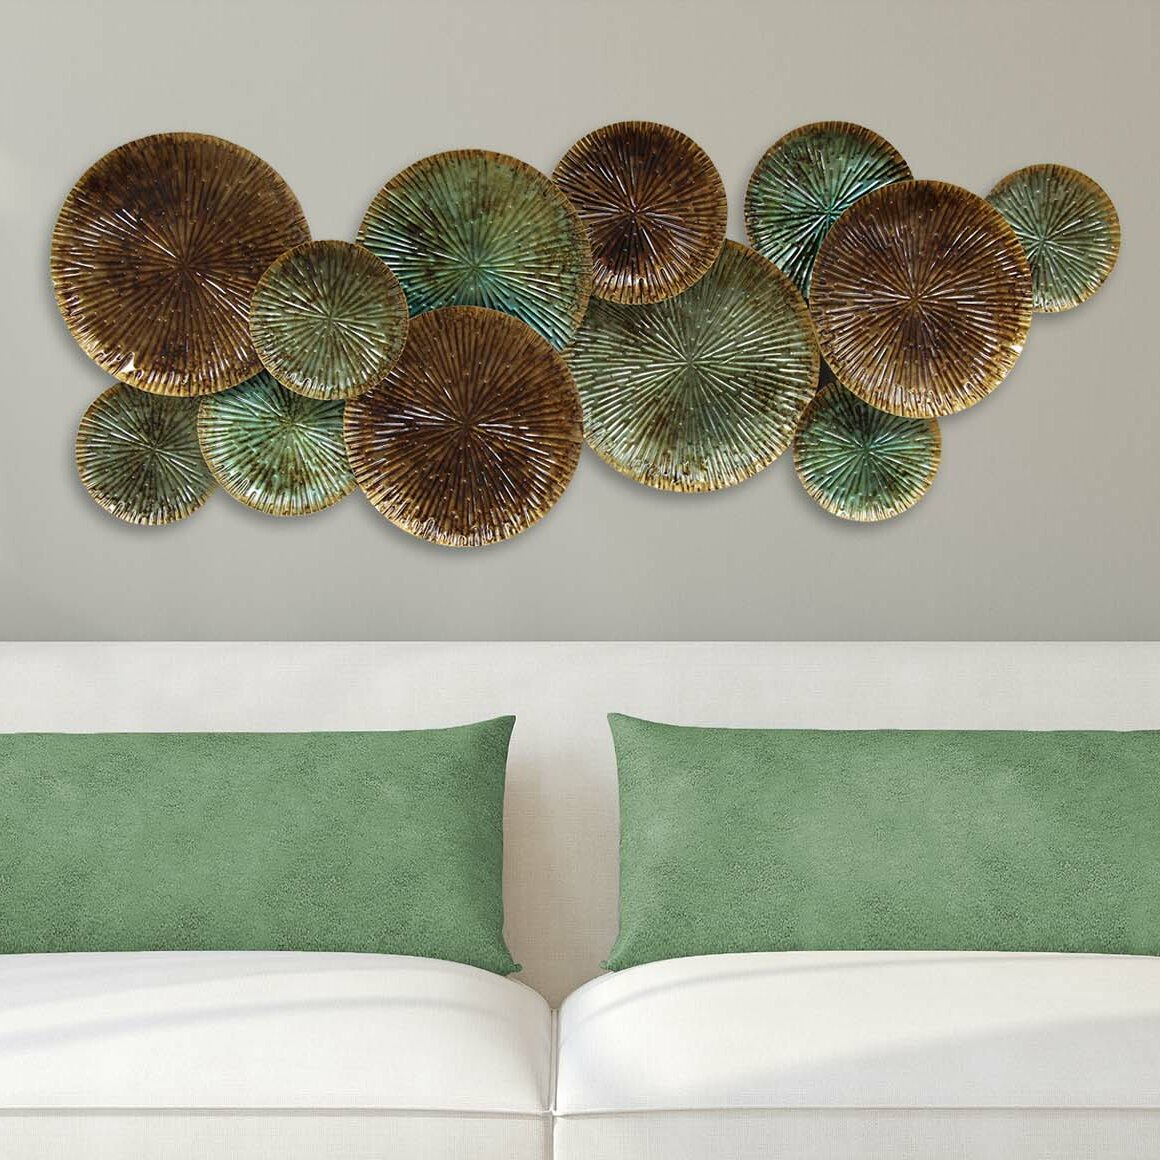 Plates Wall Decor Stratton Home Decor Textured Plates Wall Dccor Reviews Wayfair